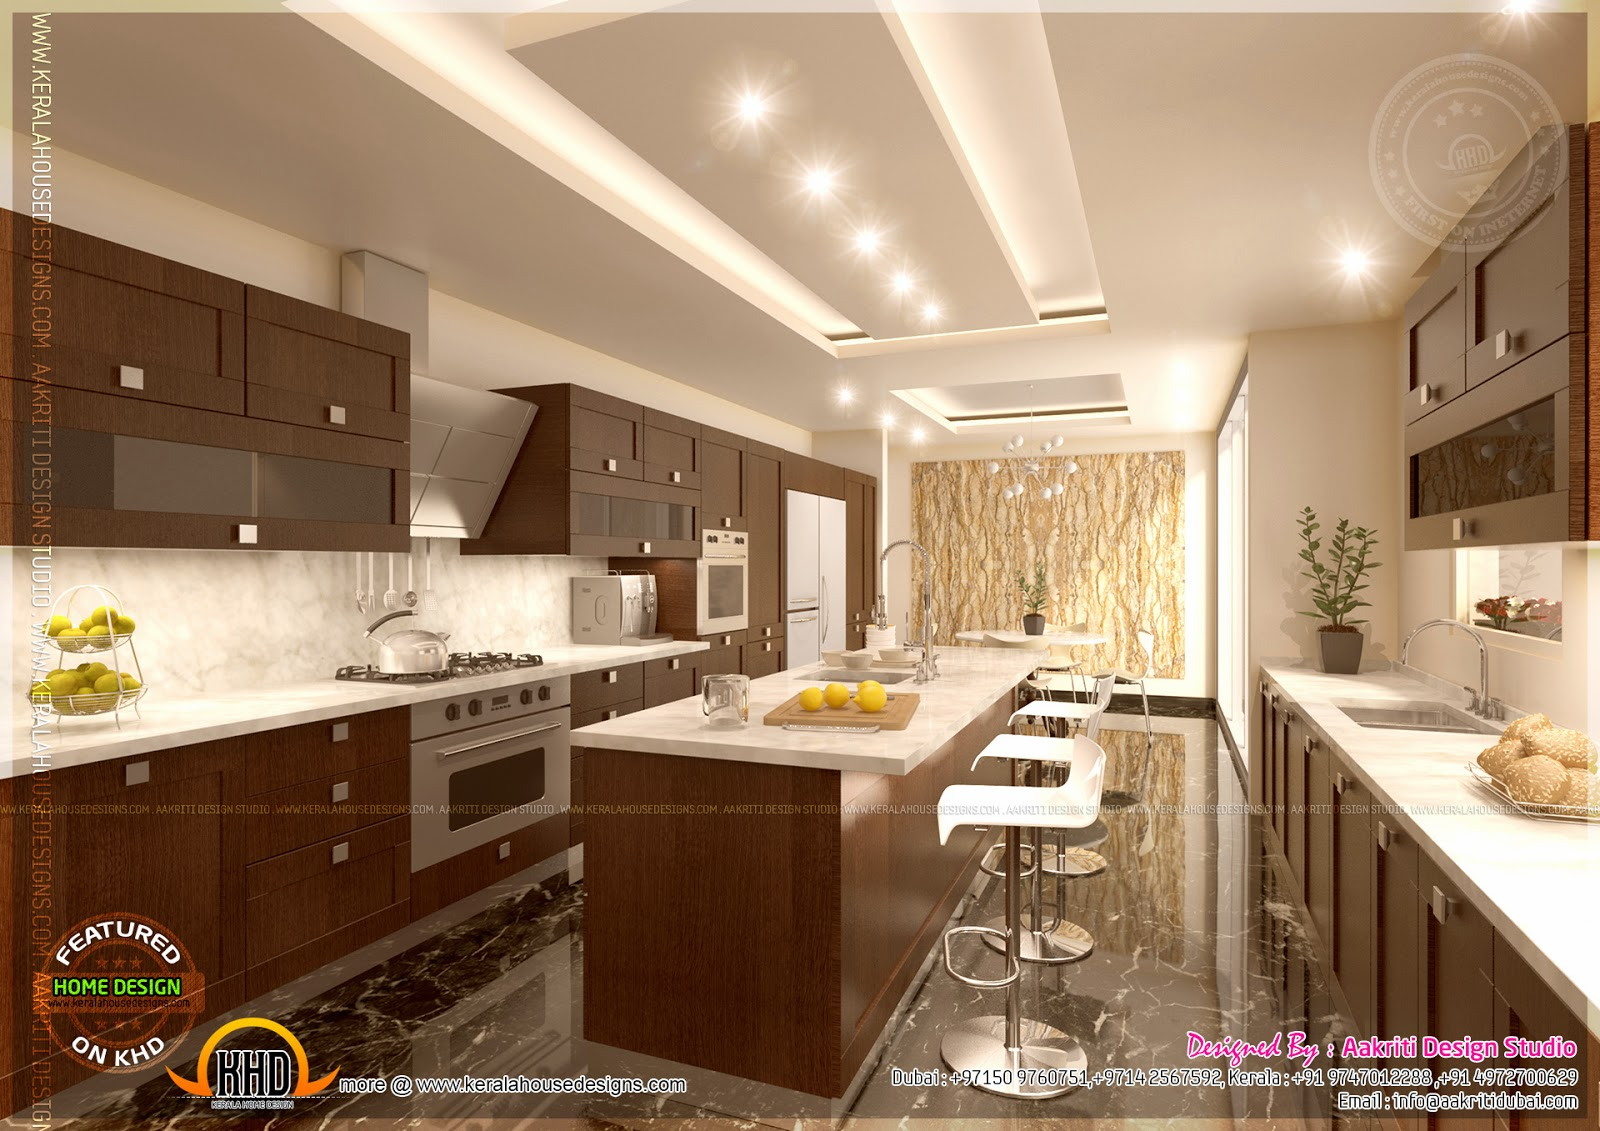 Kitchen designs by aakriti design studio kerala home for Modern kitchen designs in kerala